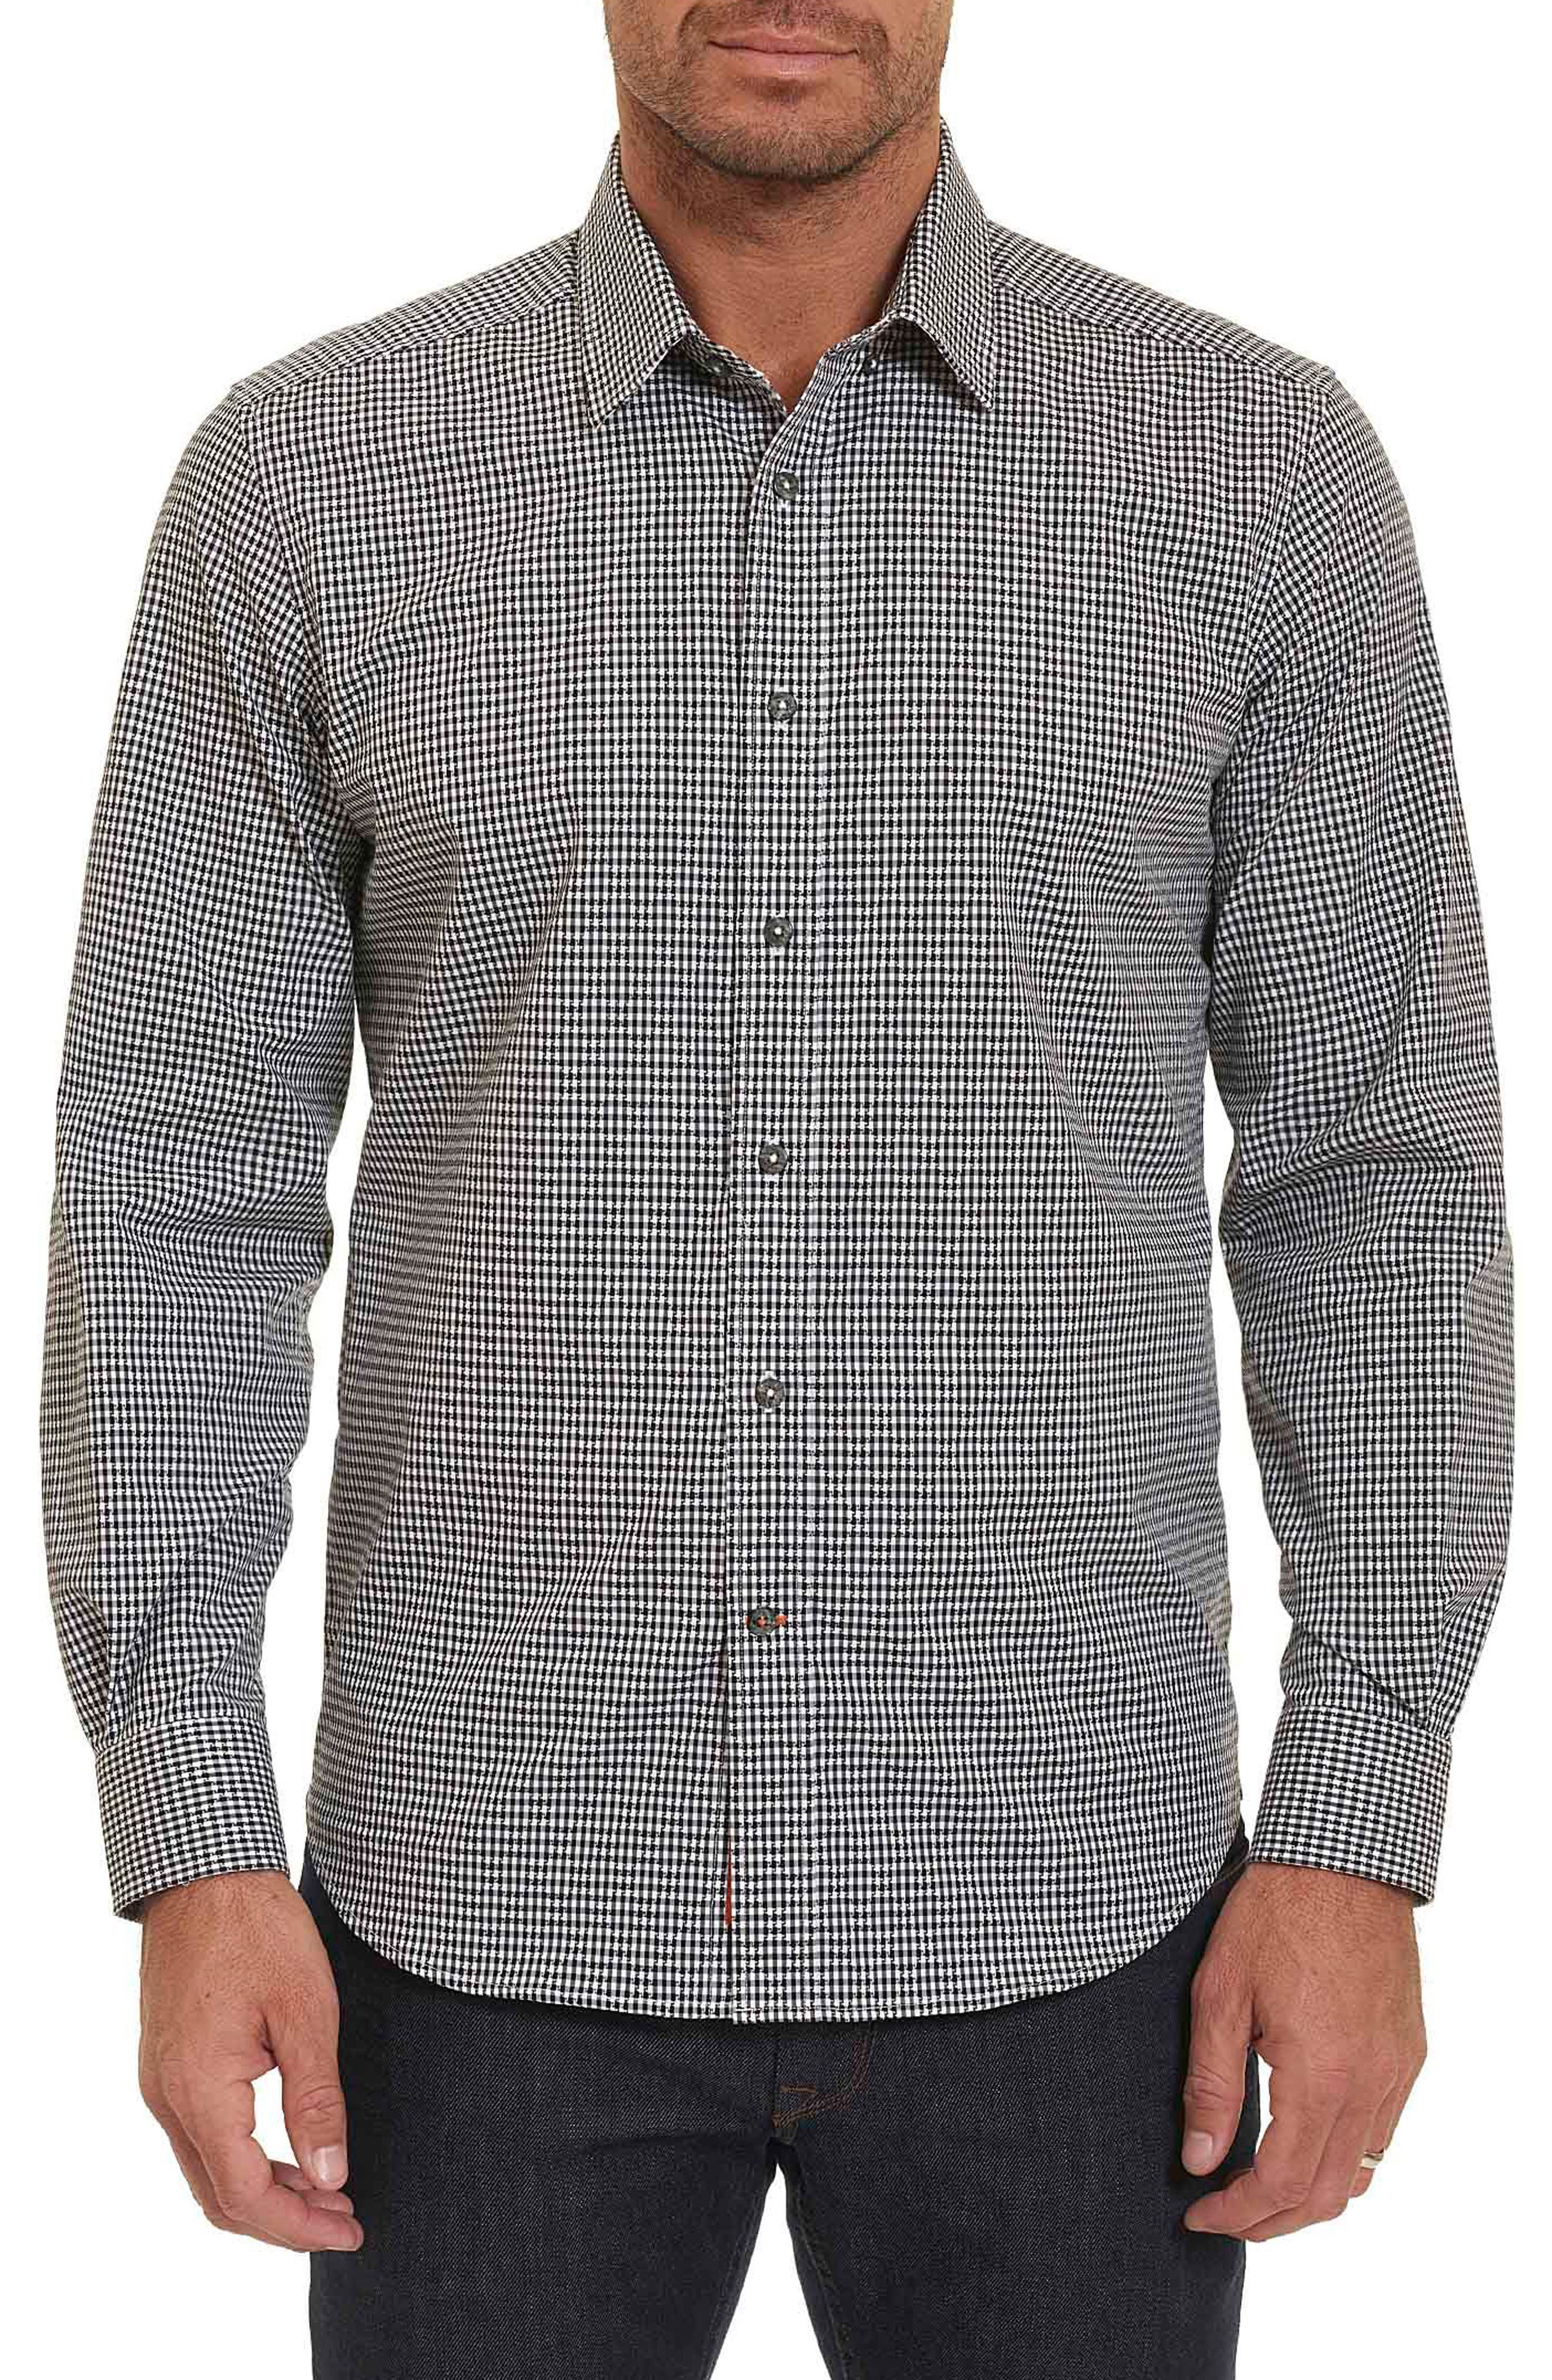 Wade Tailored Fit Check Sport Shirt,                             Main thumbnail 1, color,                             001